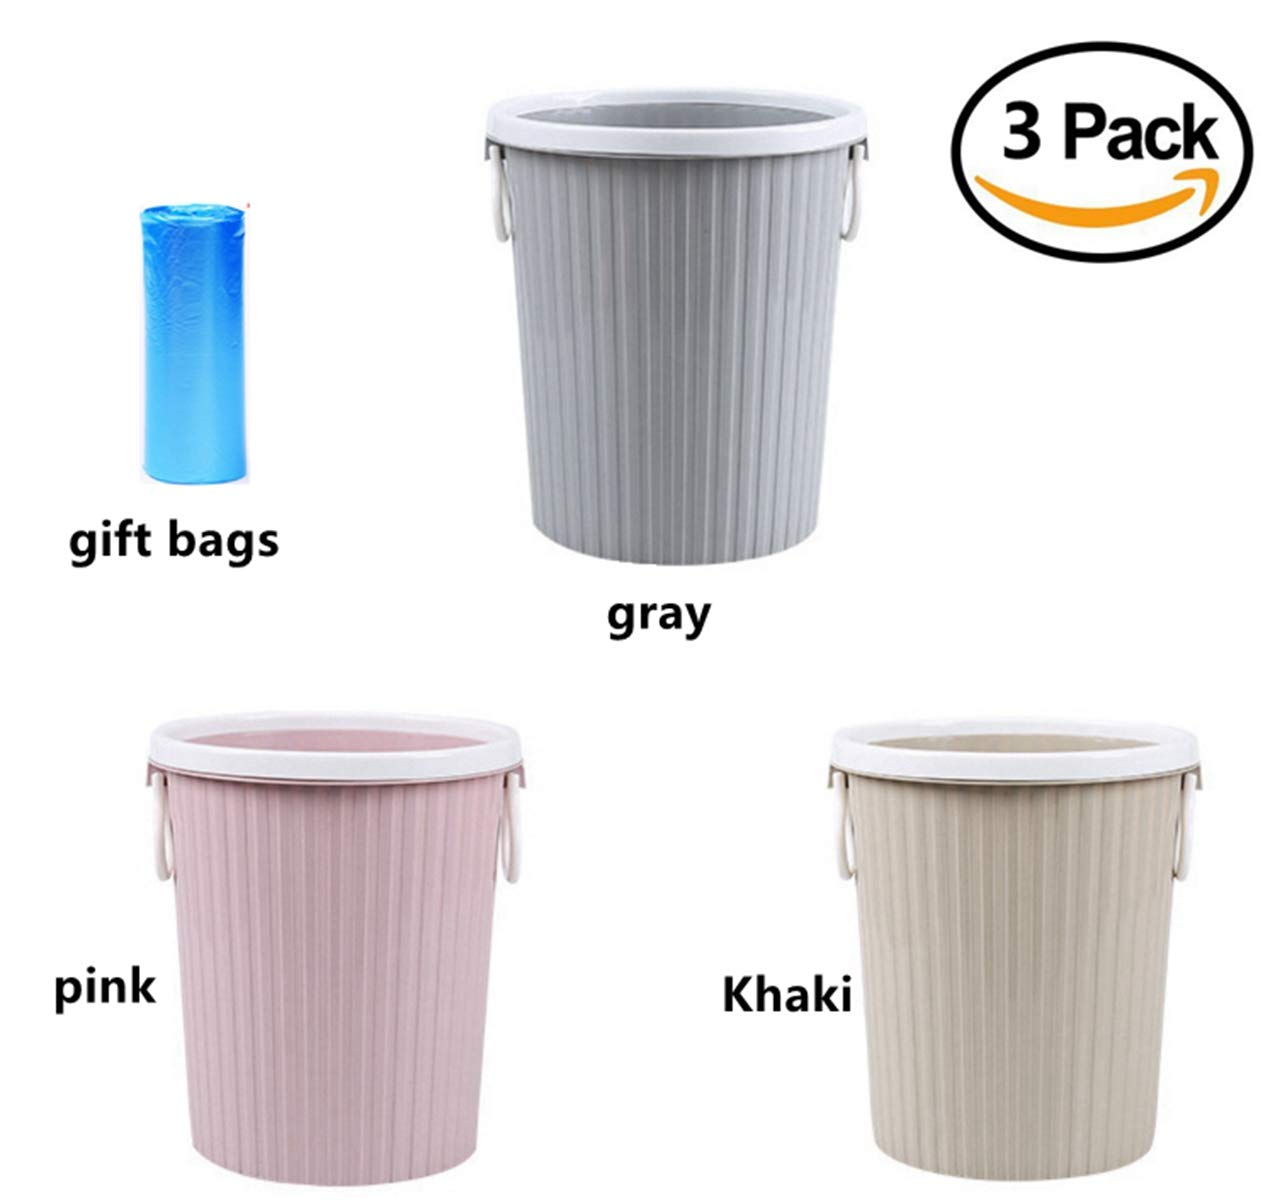 ZHOUWHJJ Round Plastic Trash Can Wastebasket Trash Bin with Trash Bags, Garbage Container Bin for Bathroom, Home, Kitchen or Office, 3 Pack, 3 Gallon Capacity